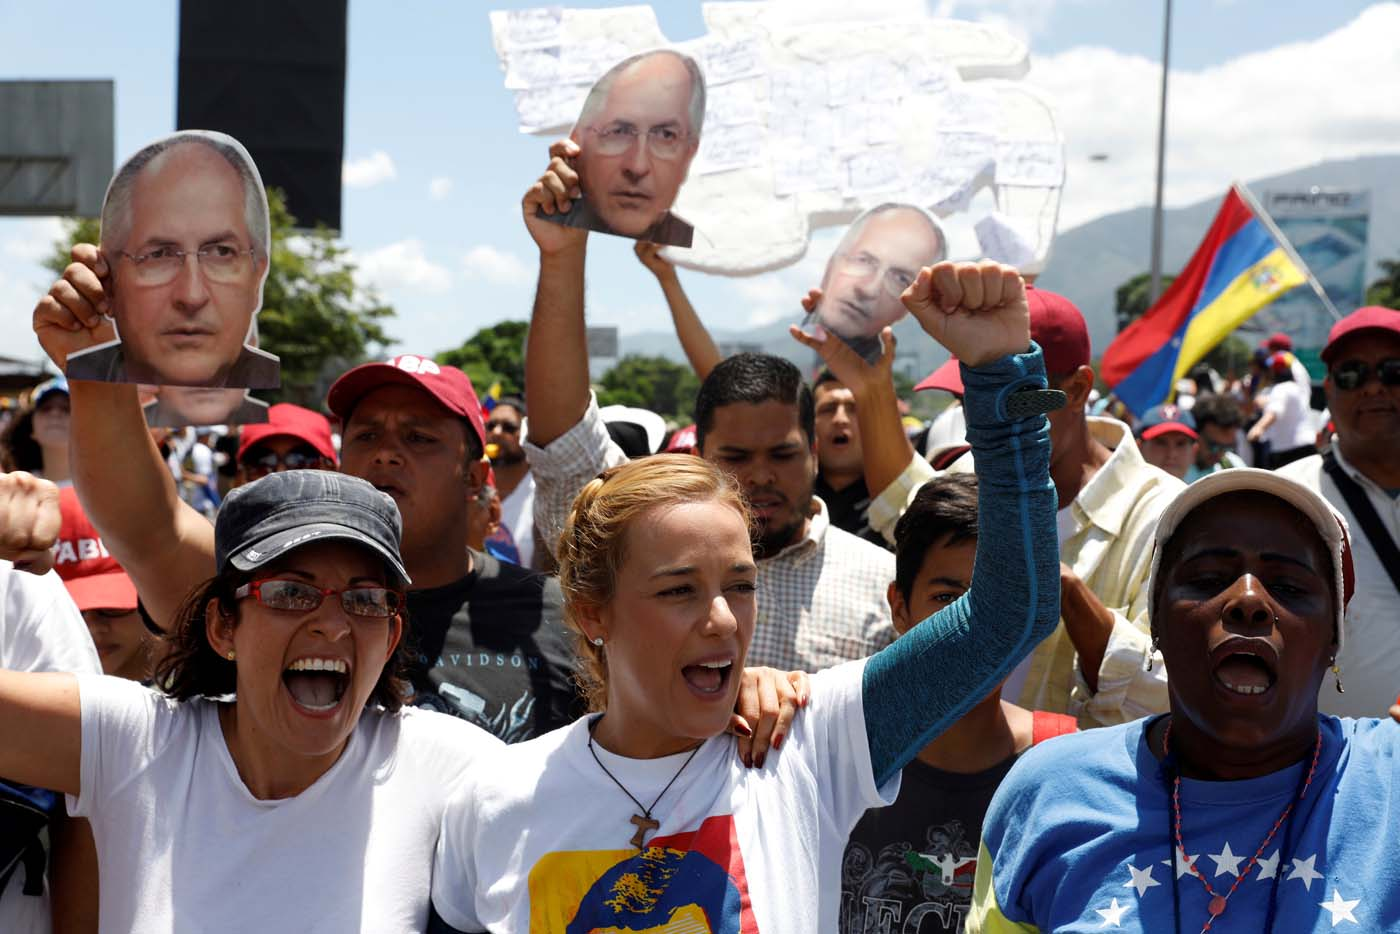 Lilian Tintori (C), wife of jailed opposition leader Leopoldo Lopez, and opposition supporters rally with pictures of arrested Caracas metropolitan mayor Antonio Ledezma, in Caracas, Venezuela, May 20, 2017. REUTERS/Carlos Garcia Rawlins